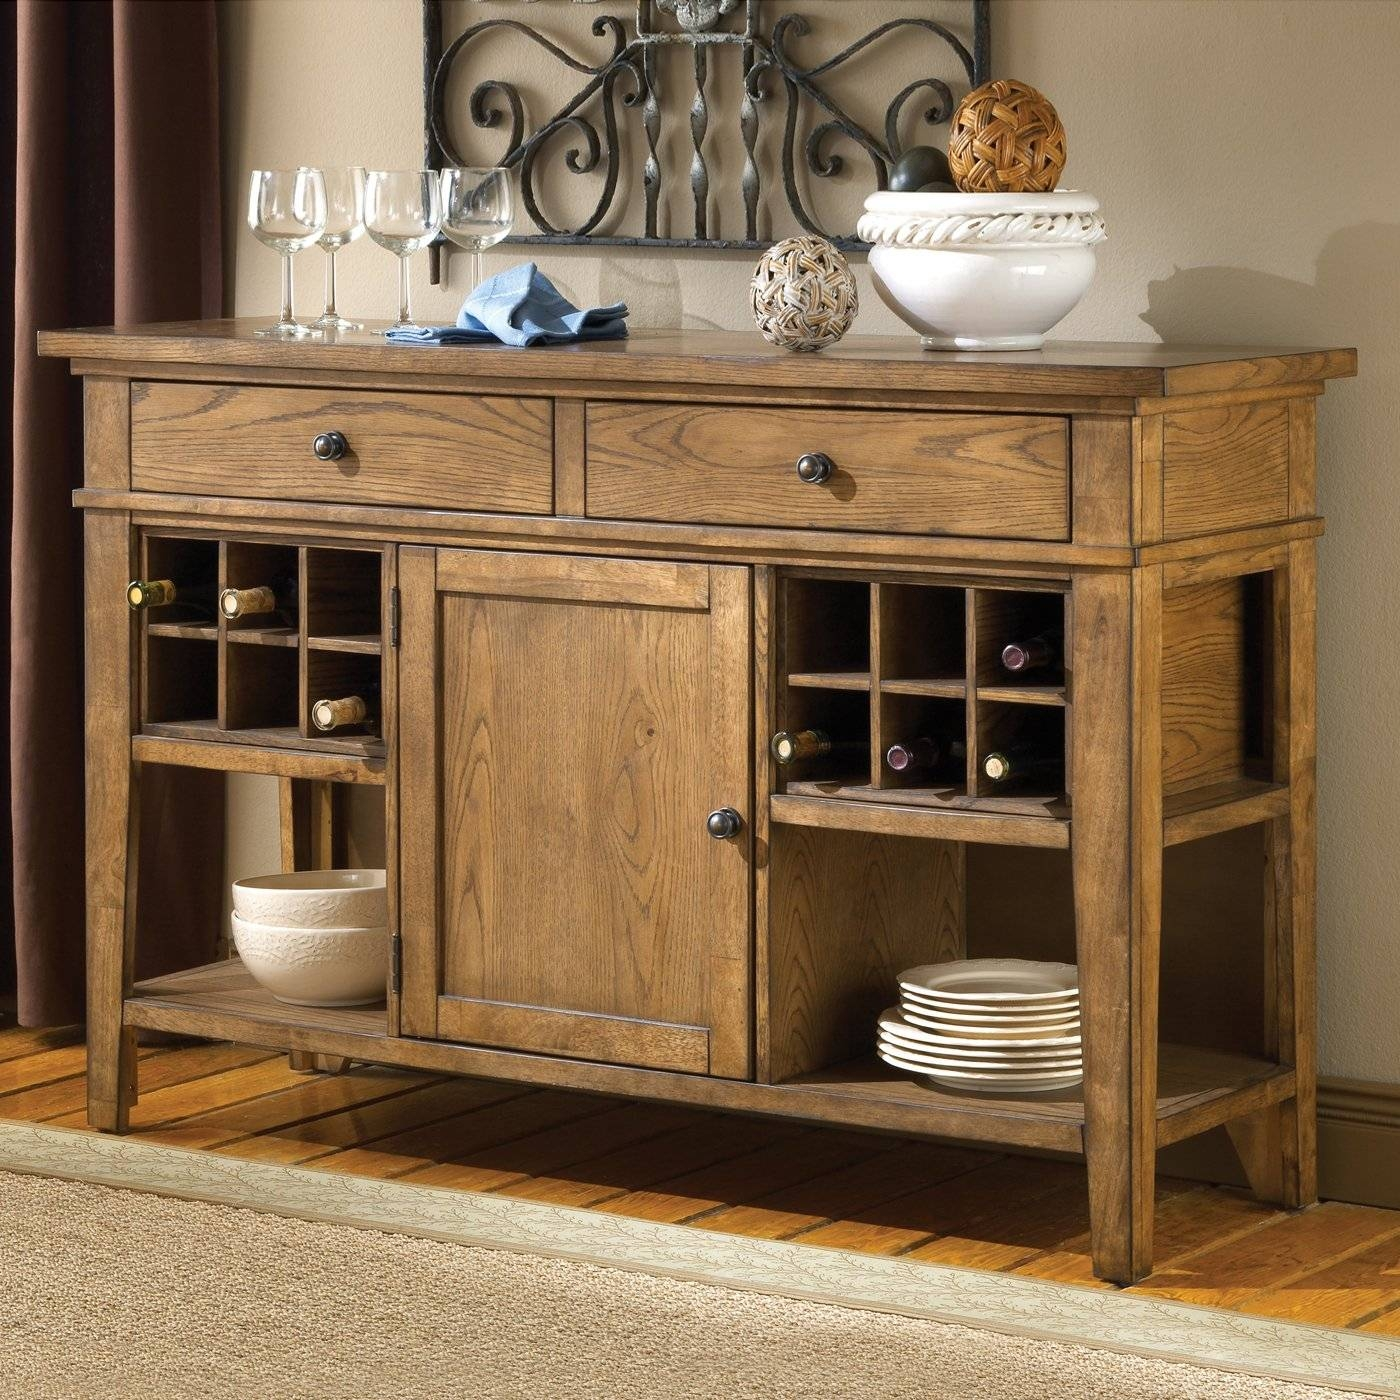 Traditional Dining Room Sideboards And Buffets : Rustic Dining throughout Rustic Sideboards And Buffets (Image 15 of 15)